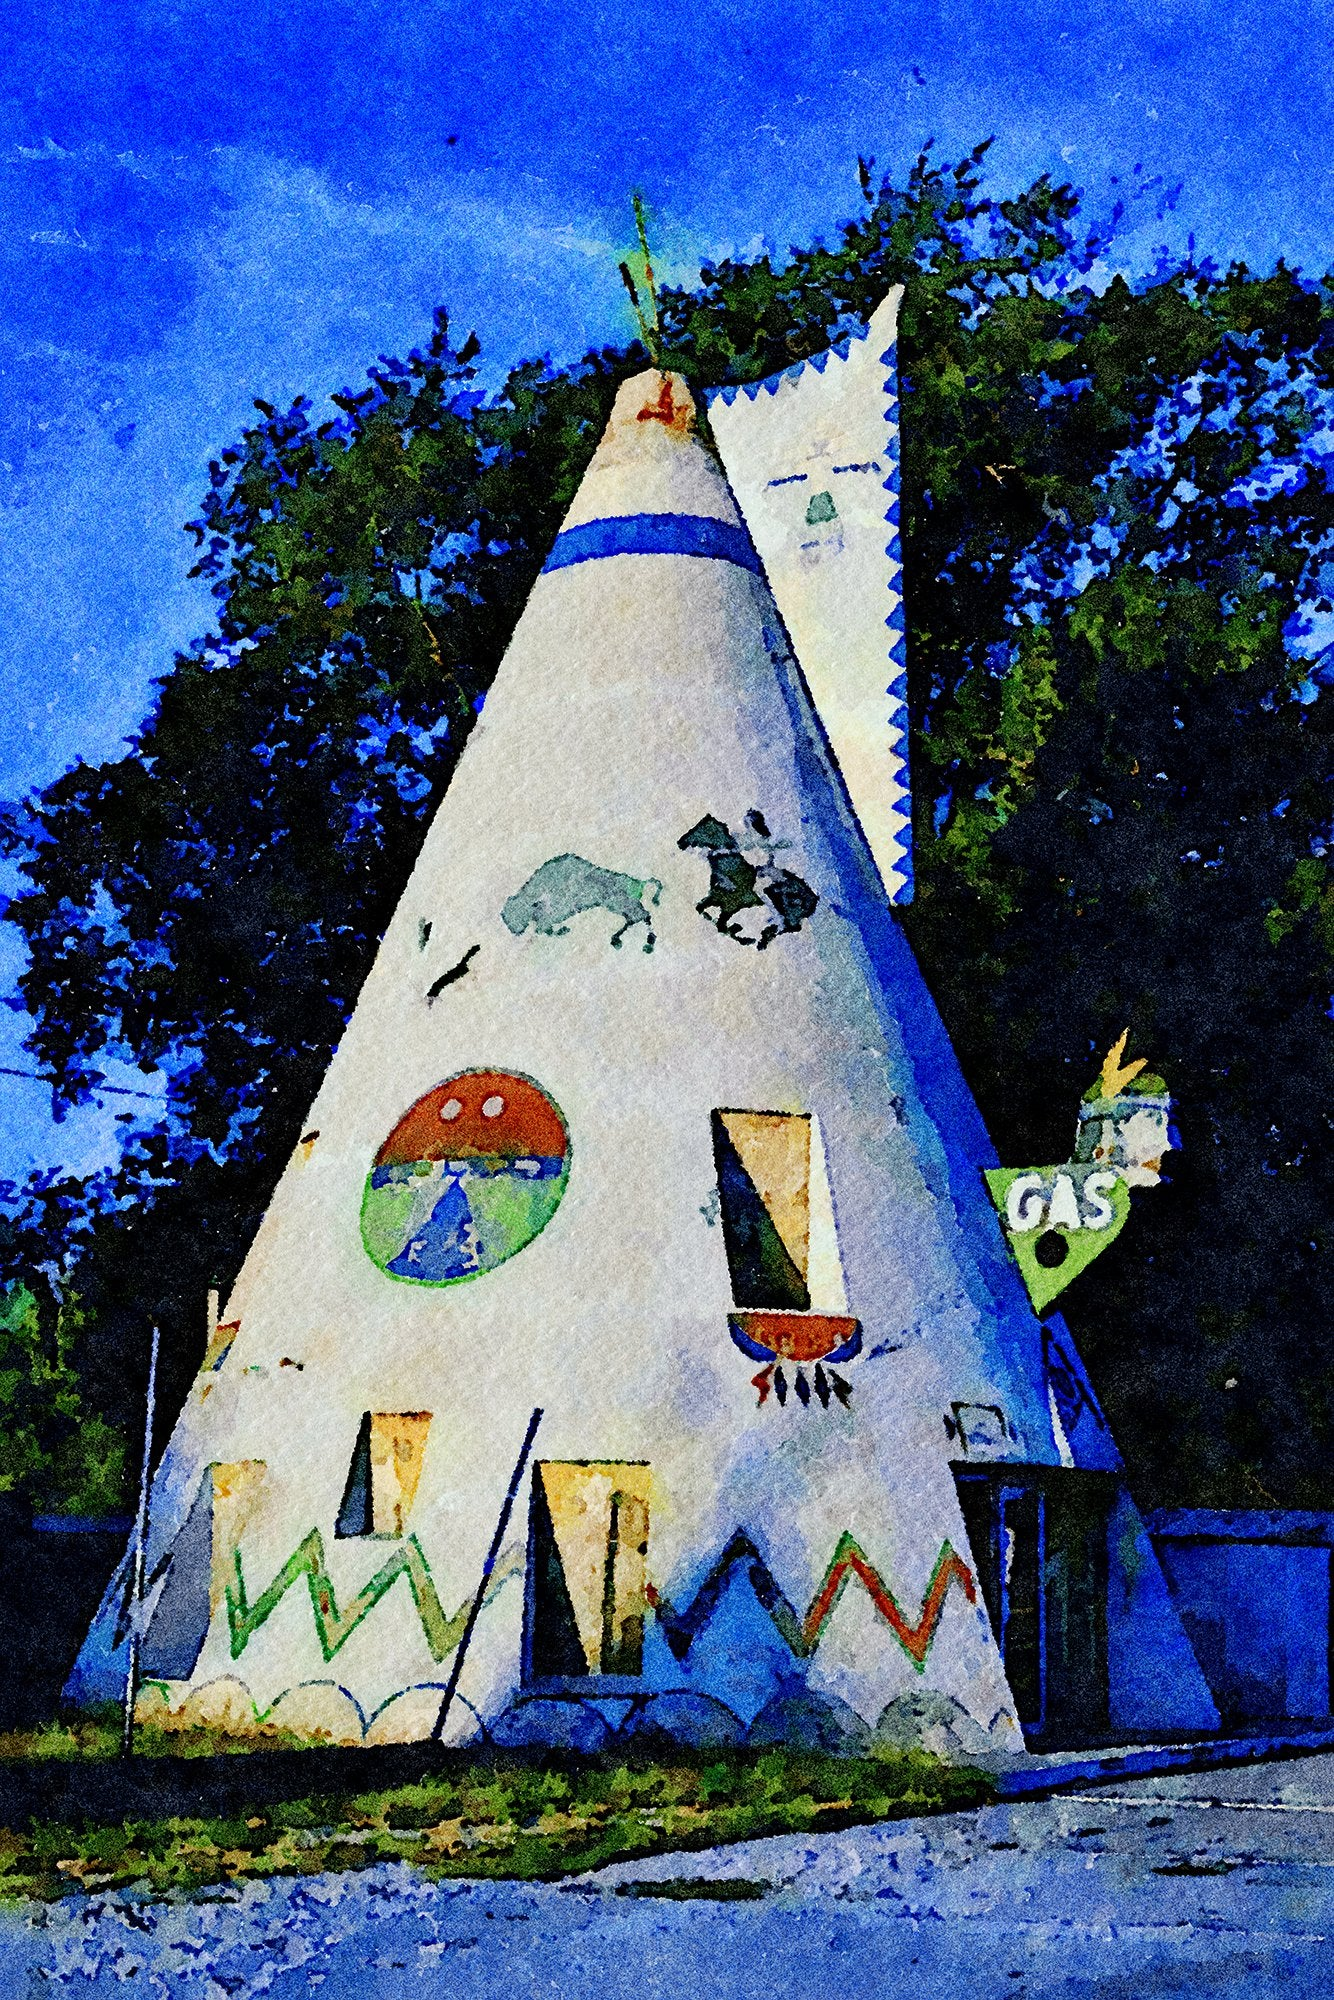 Teepee Gas Station, Route 40, Lawrence, Kansas, Reworked, Series 1